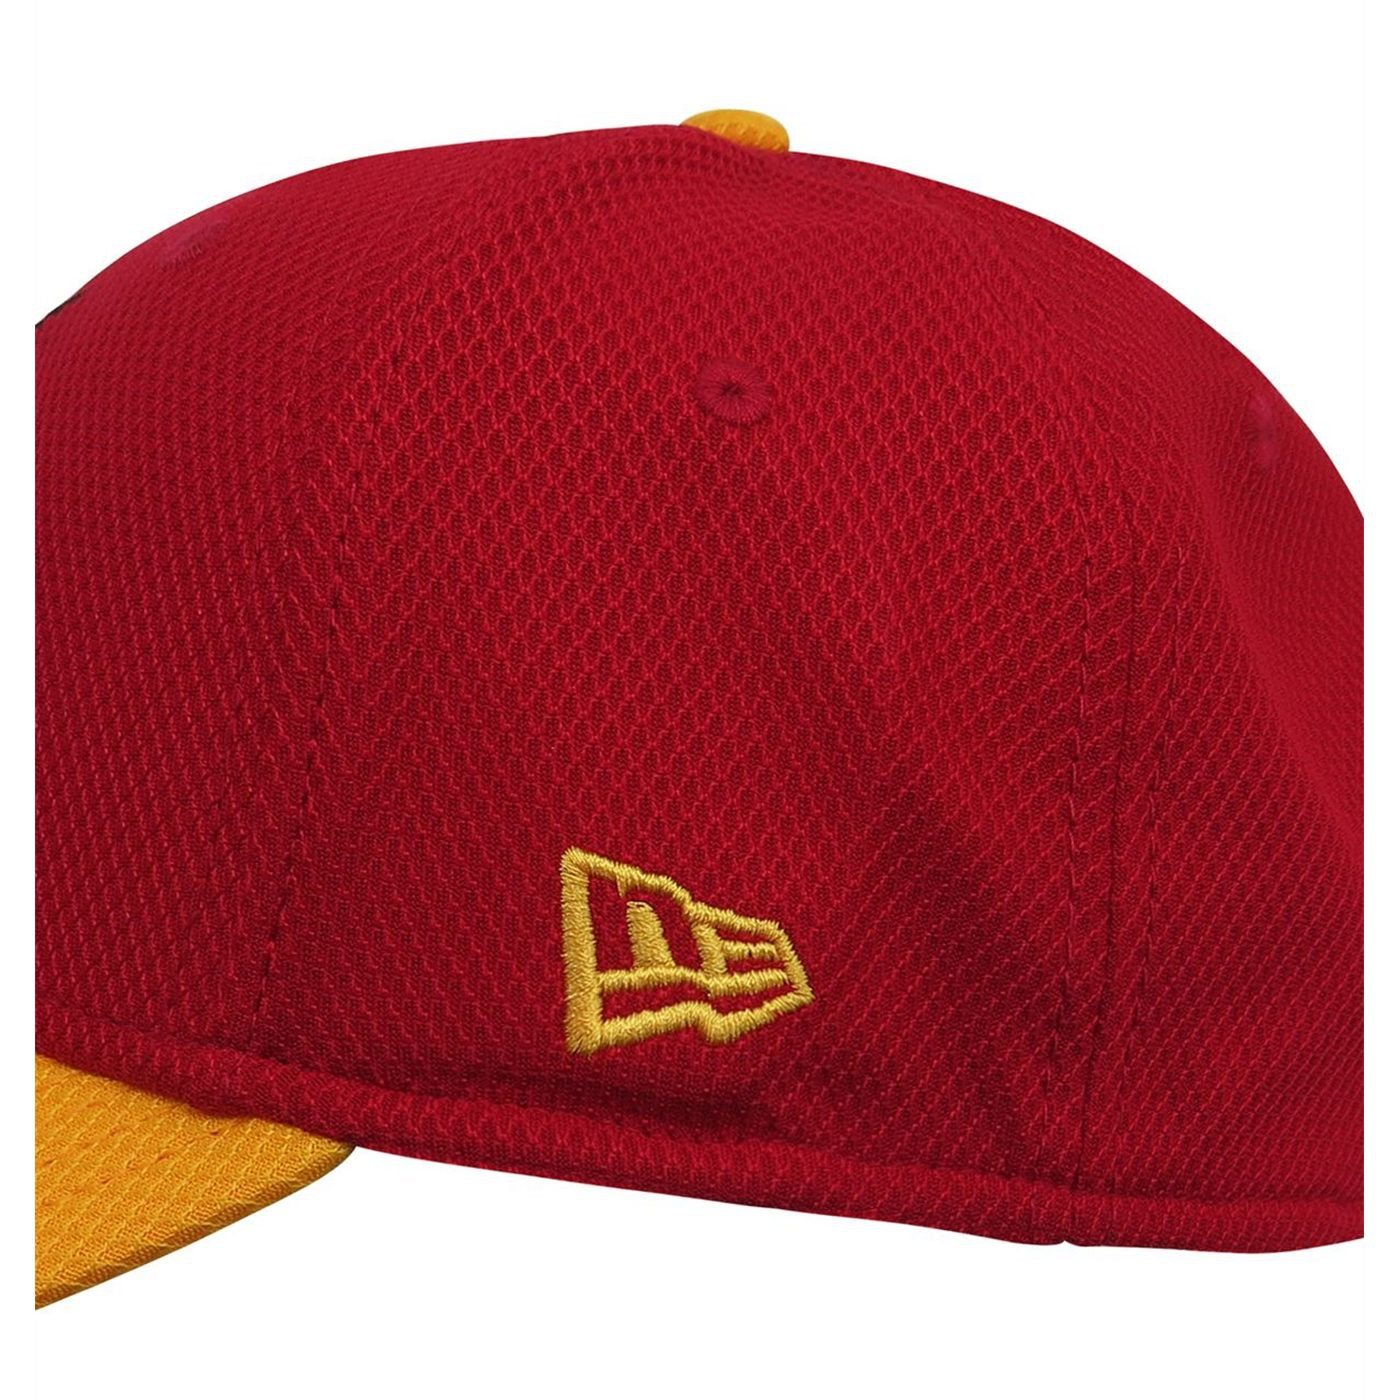 Flash 39Thirty Red & Yellow Baseball Hat